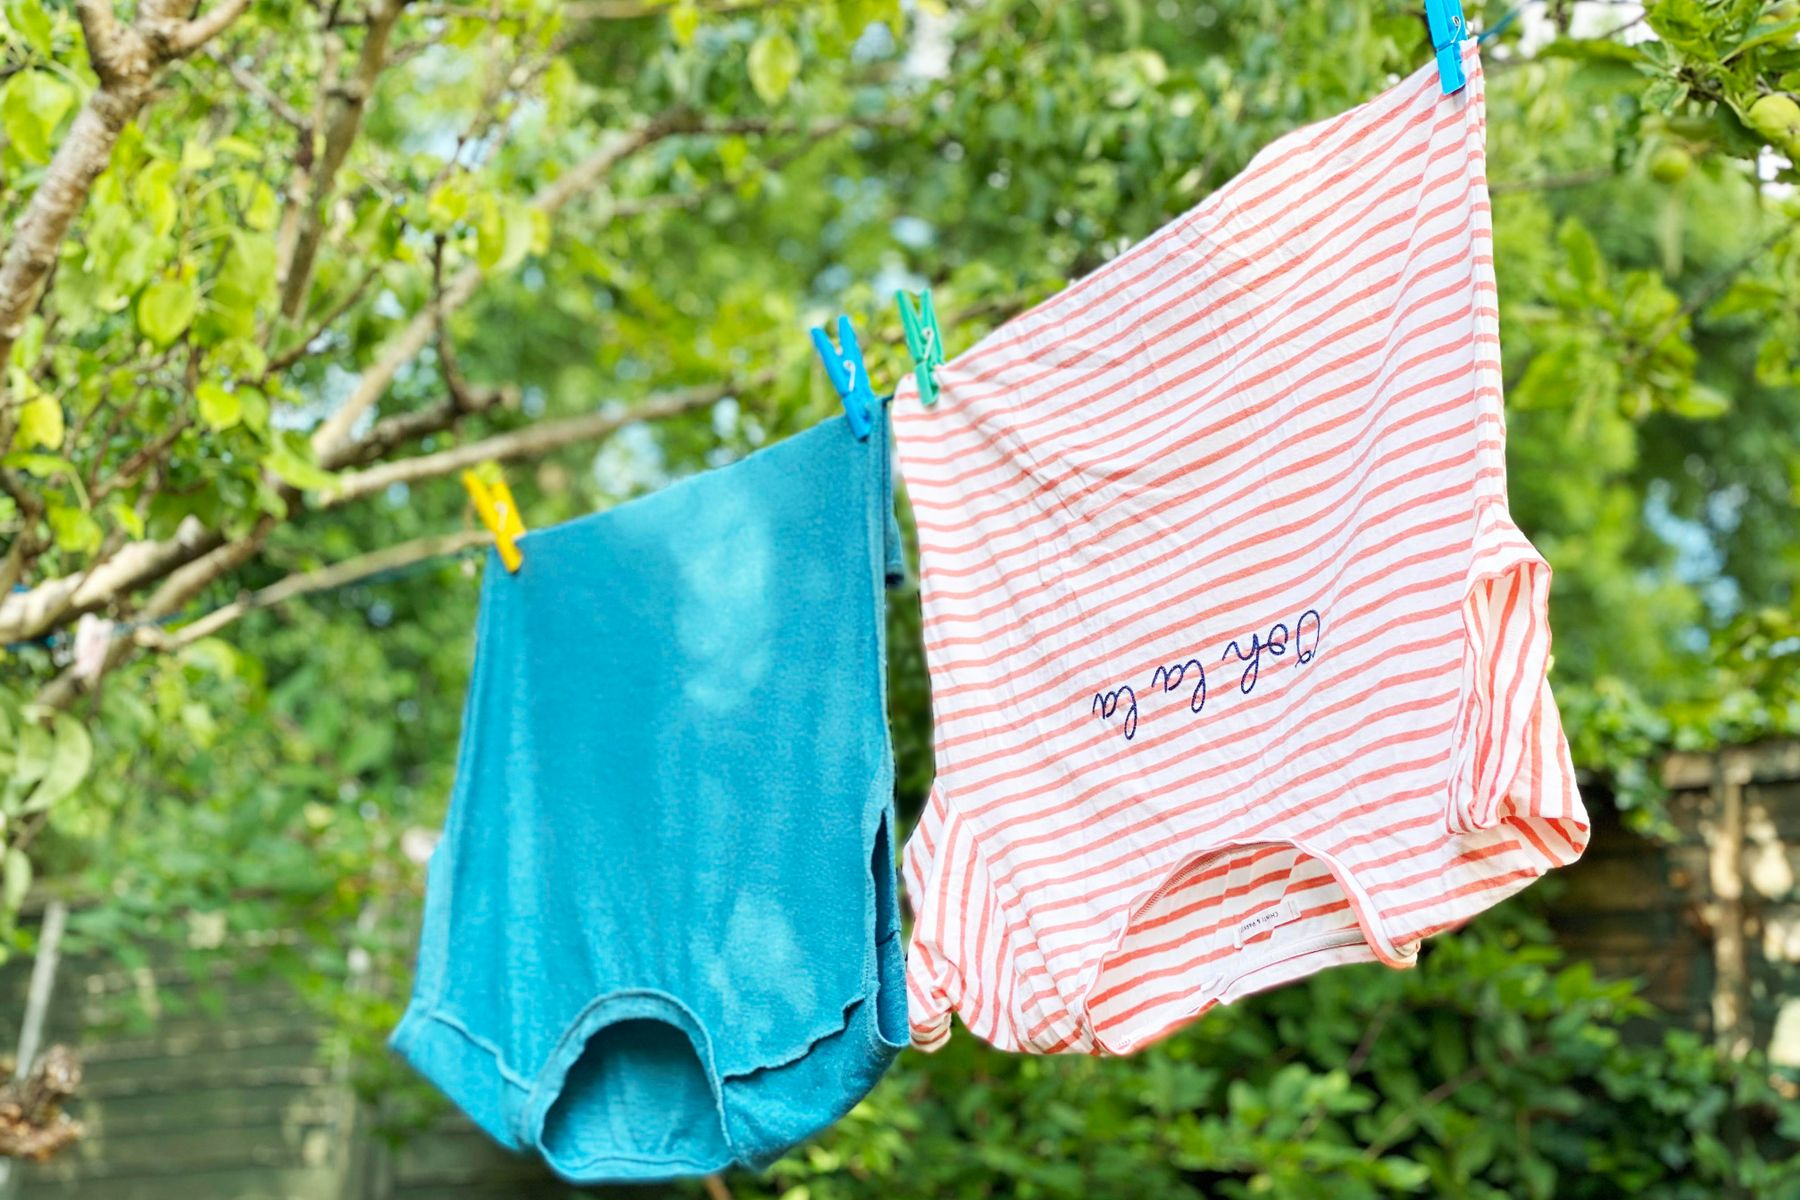 Freshly washed tops drying on a washing line outside